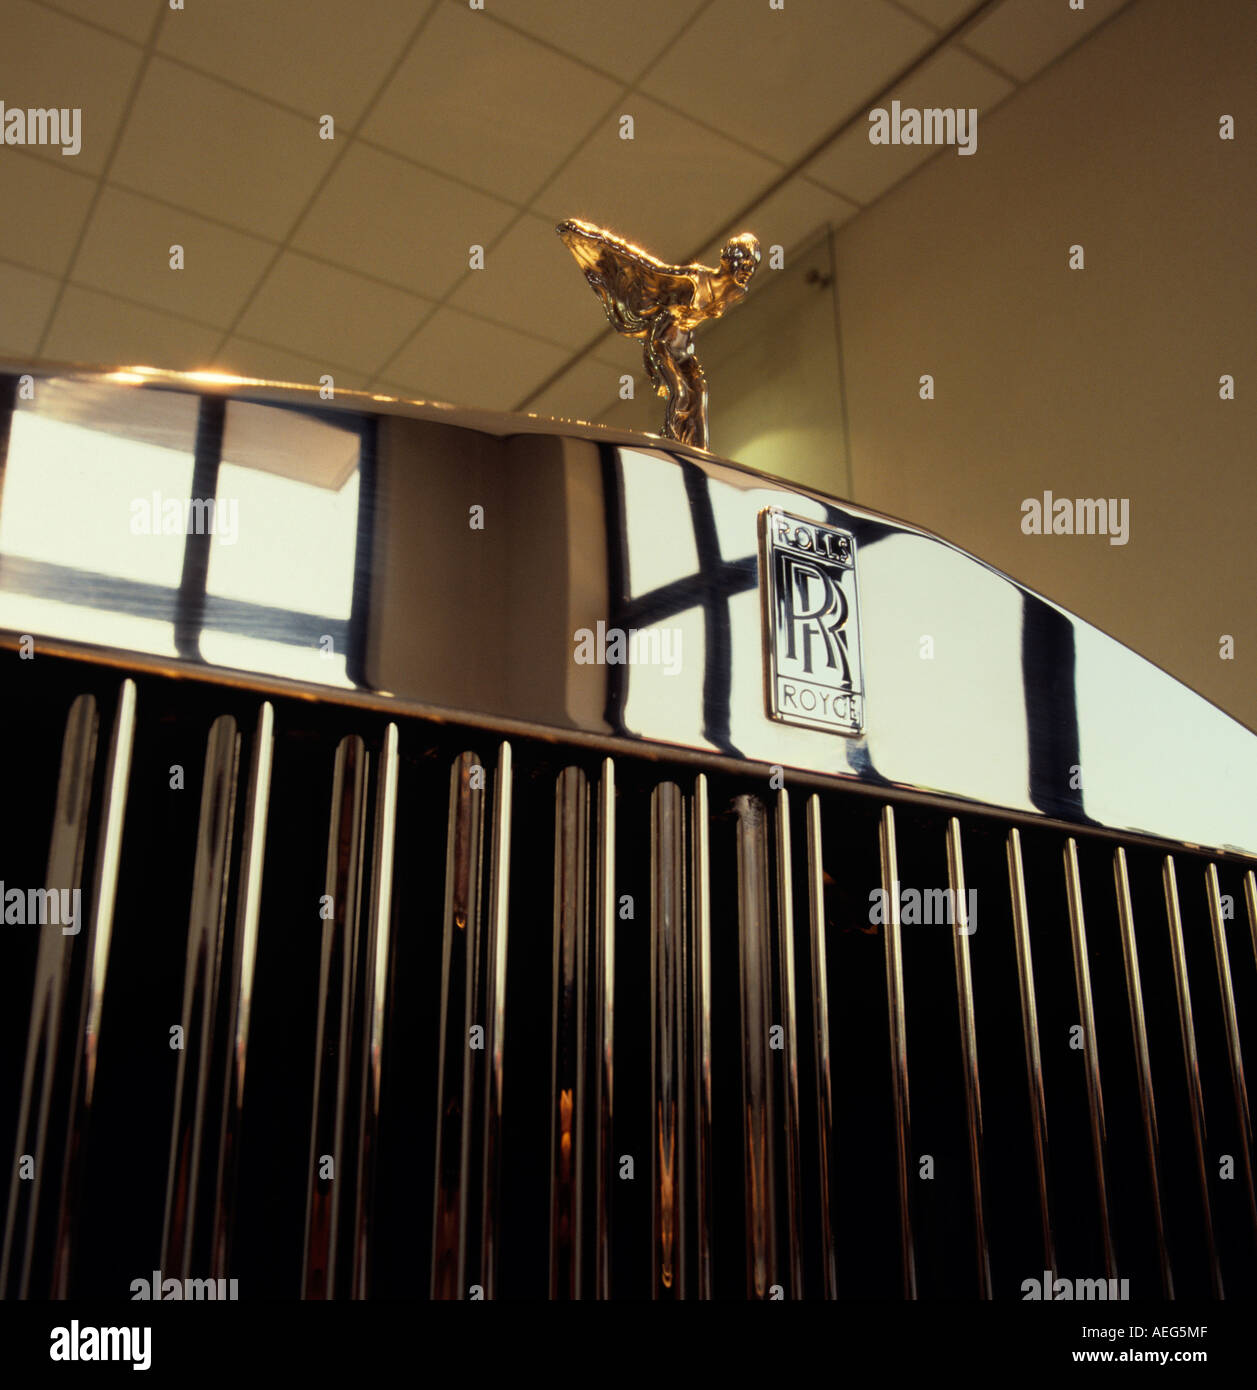 Cheshire Crewe Car Making history Rolls Royce factory foyer 1990s radiator of car - Stock Image